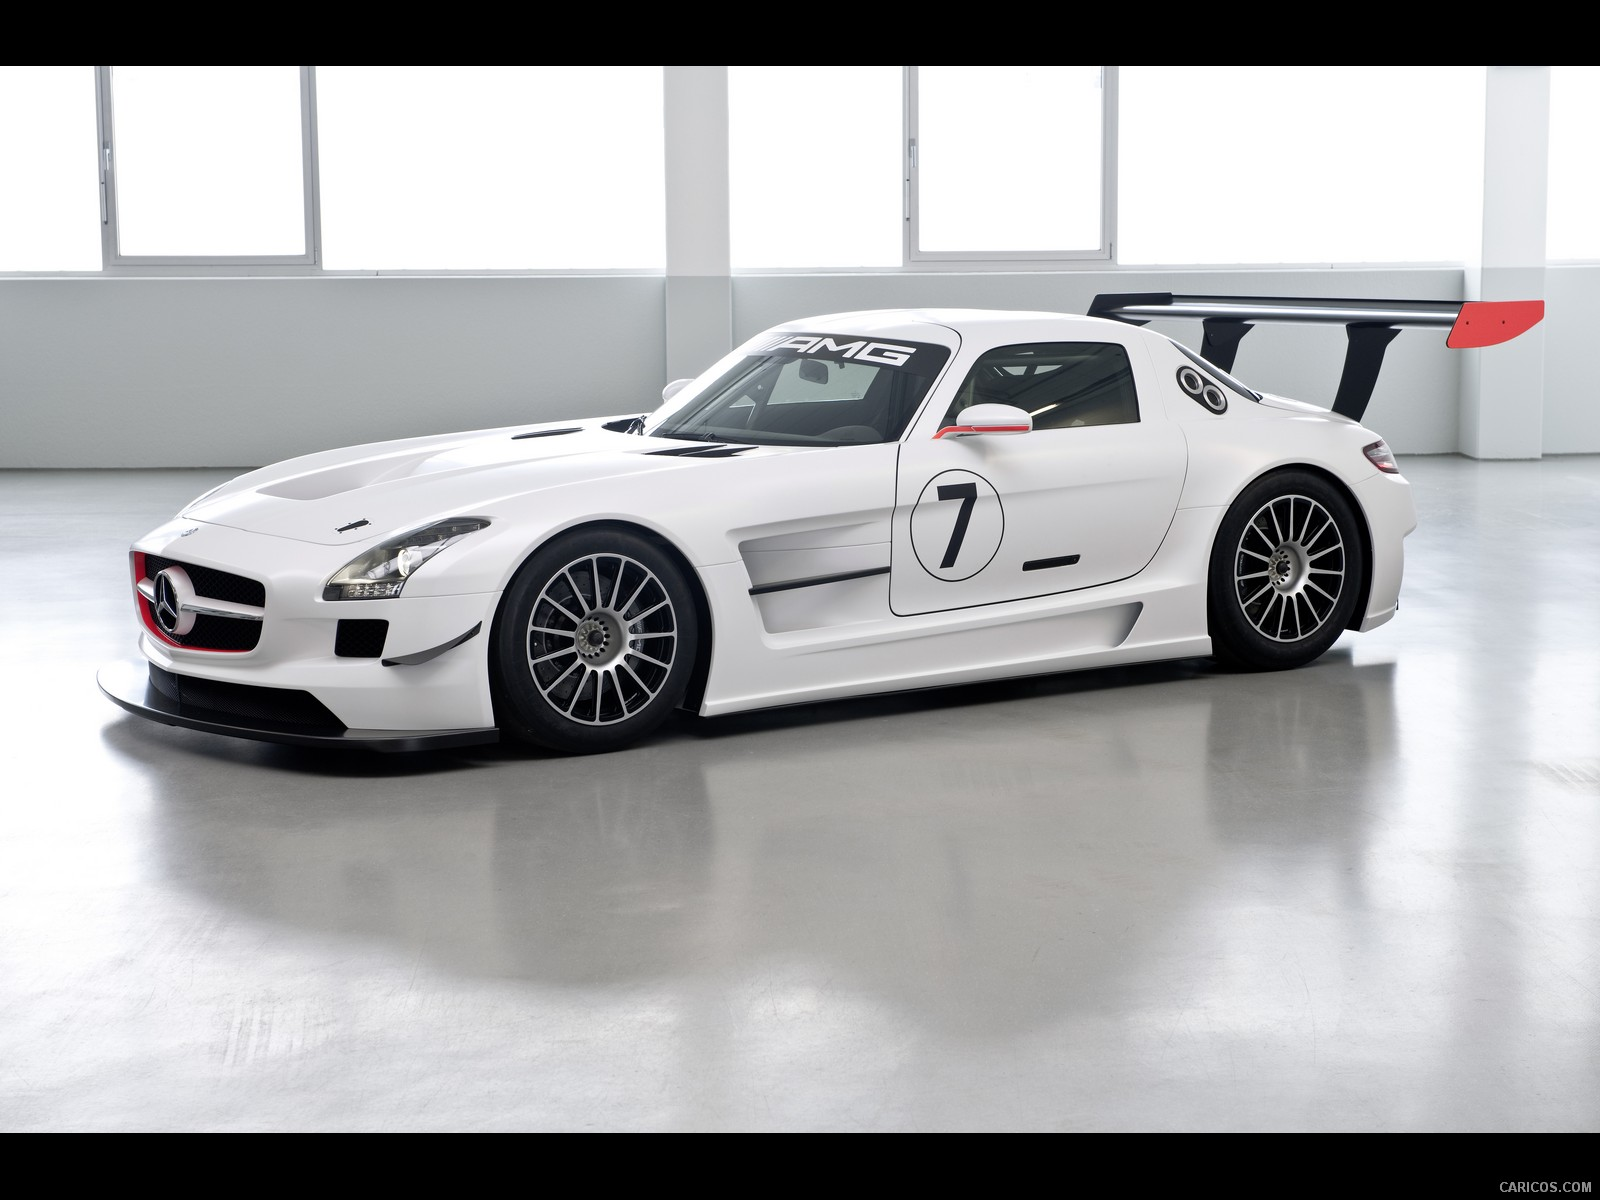 Mercedes-Benz SLS AMG GT3 - Side View Photo Wallpaper